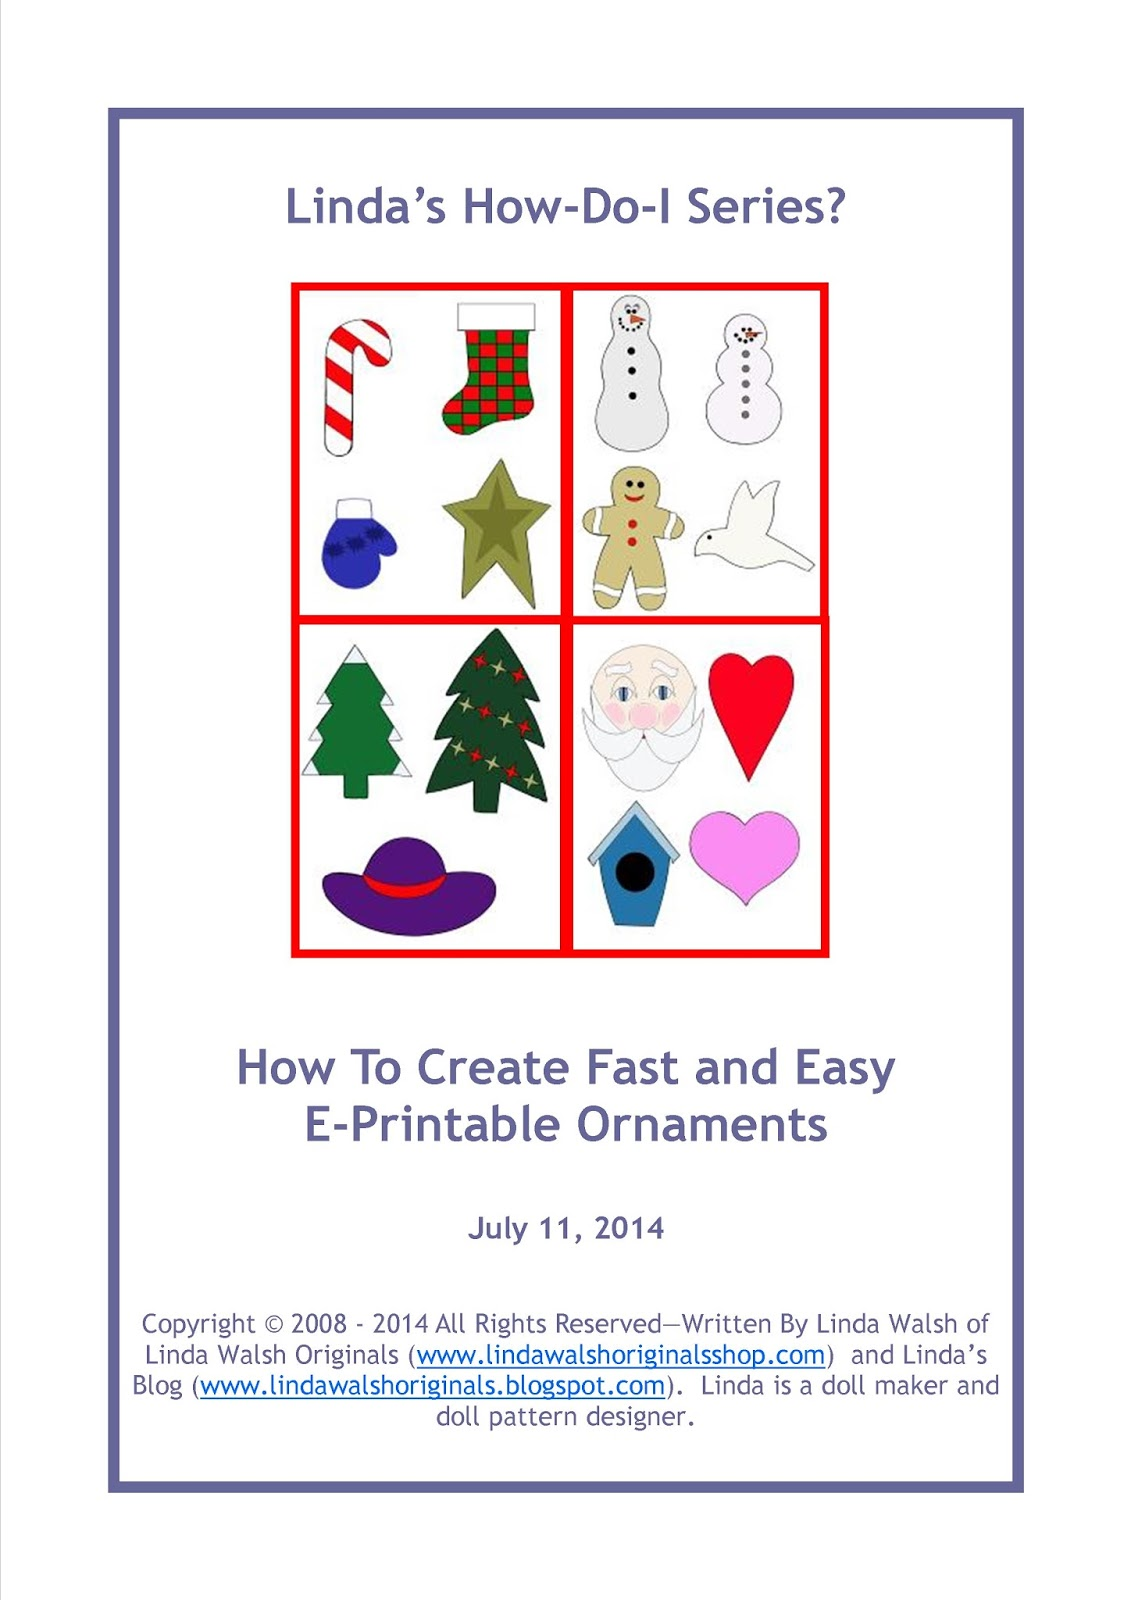 How To Make A Book Quickly : Linda walsh originals dolls and crafts s how